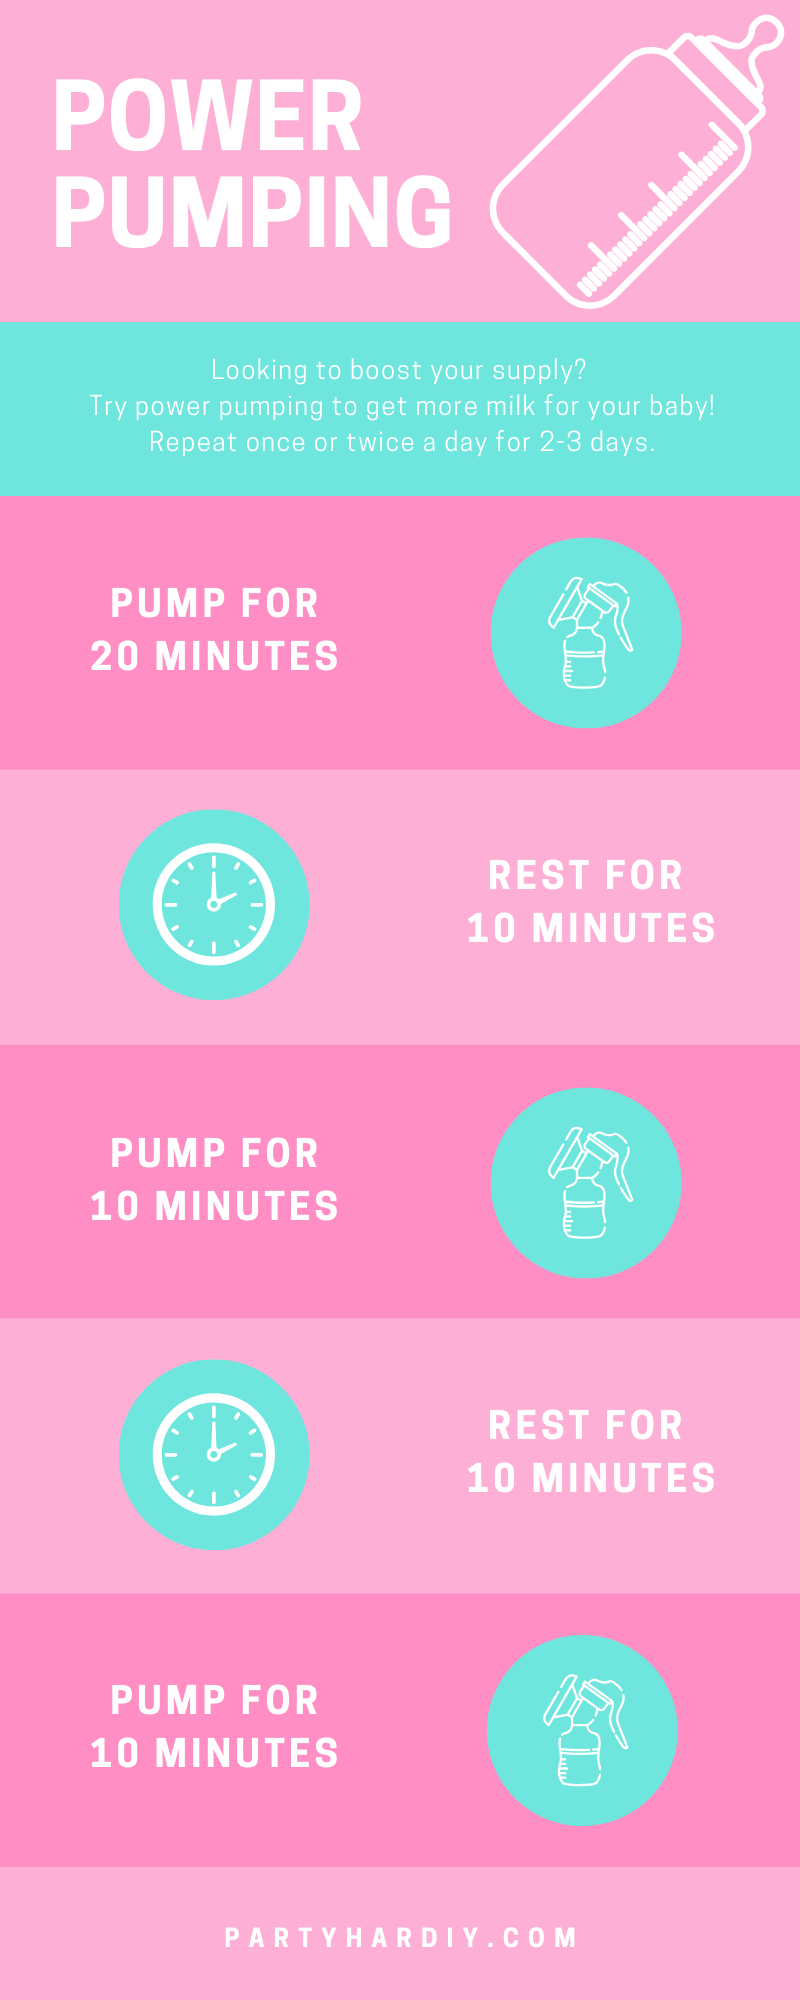 Looking to increase your breastmilk supply? Try a power pump session! It only takes an hour and helps A LOT. Plus, learn what foods and supplements I used to increase my supply- fast! Don't forget to pin it on Pinterest so that you can have it saved forever. Click to see all my tips, plus the must-have items for a successful breastfeeding journey! #breastfeedingtips #powerpumping #breastfeedingsupply #breastfeeding